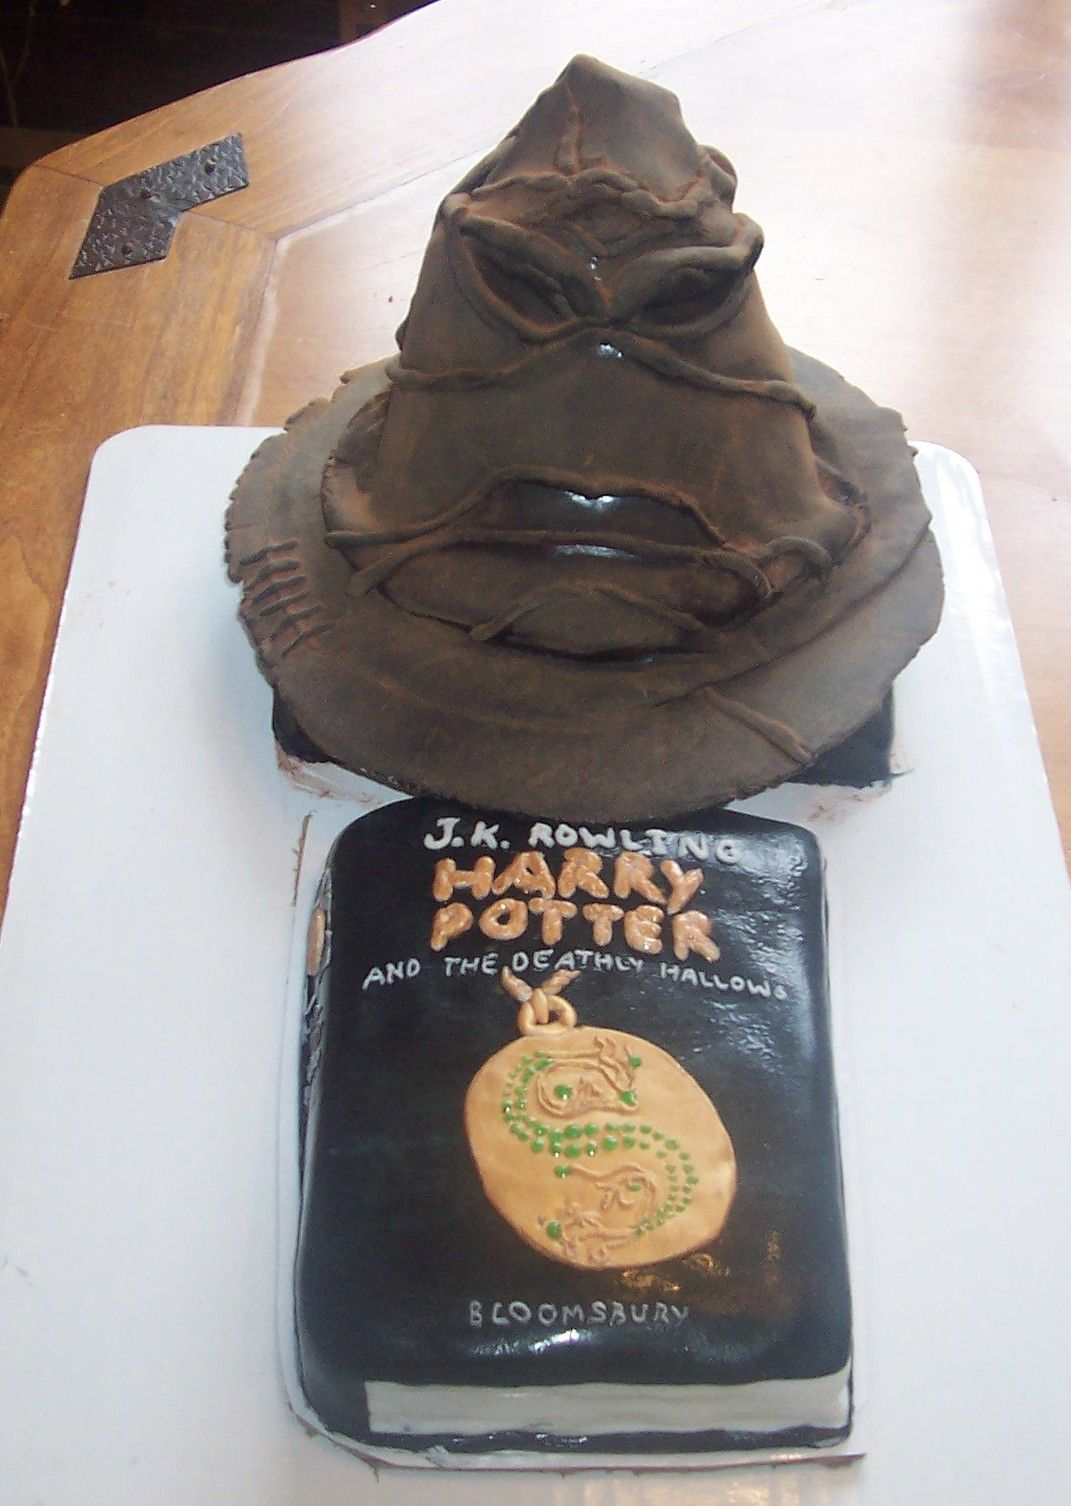 Harry Potter Sorting Hat cake https://www.facebook.com/SweetWhimsyDesigns